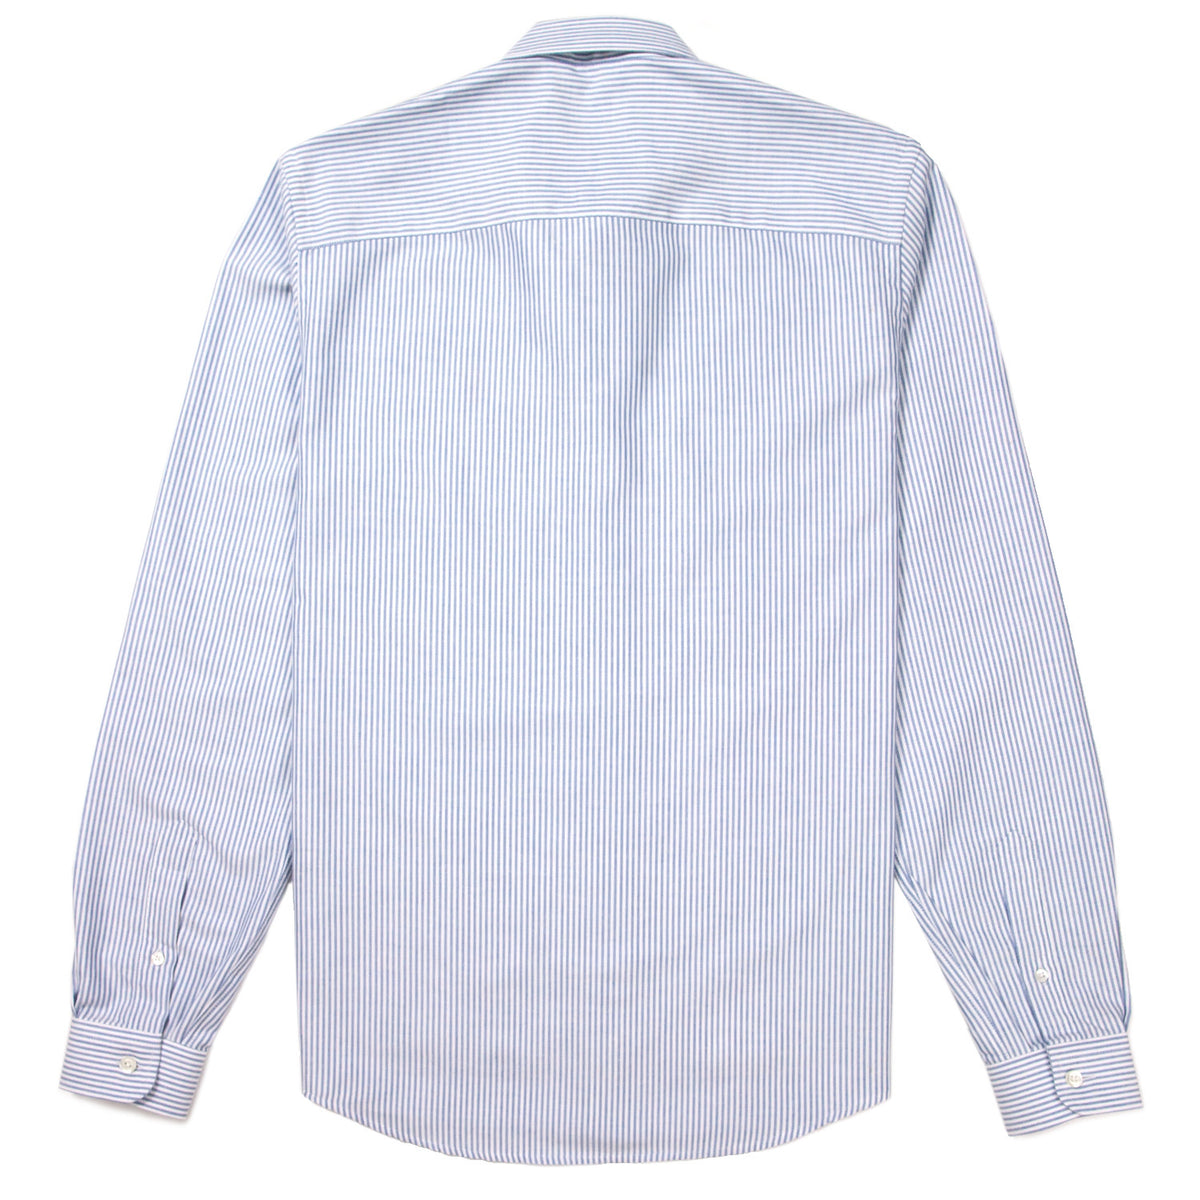 DE COEUR SHIRT - BLUE/WHITE